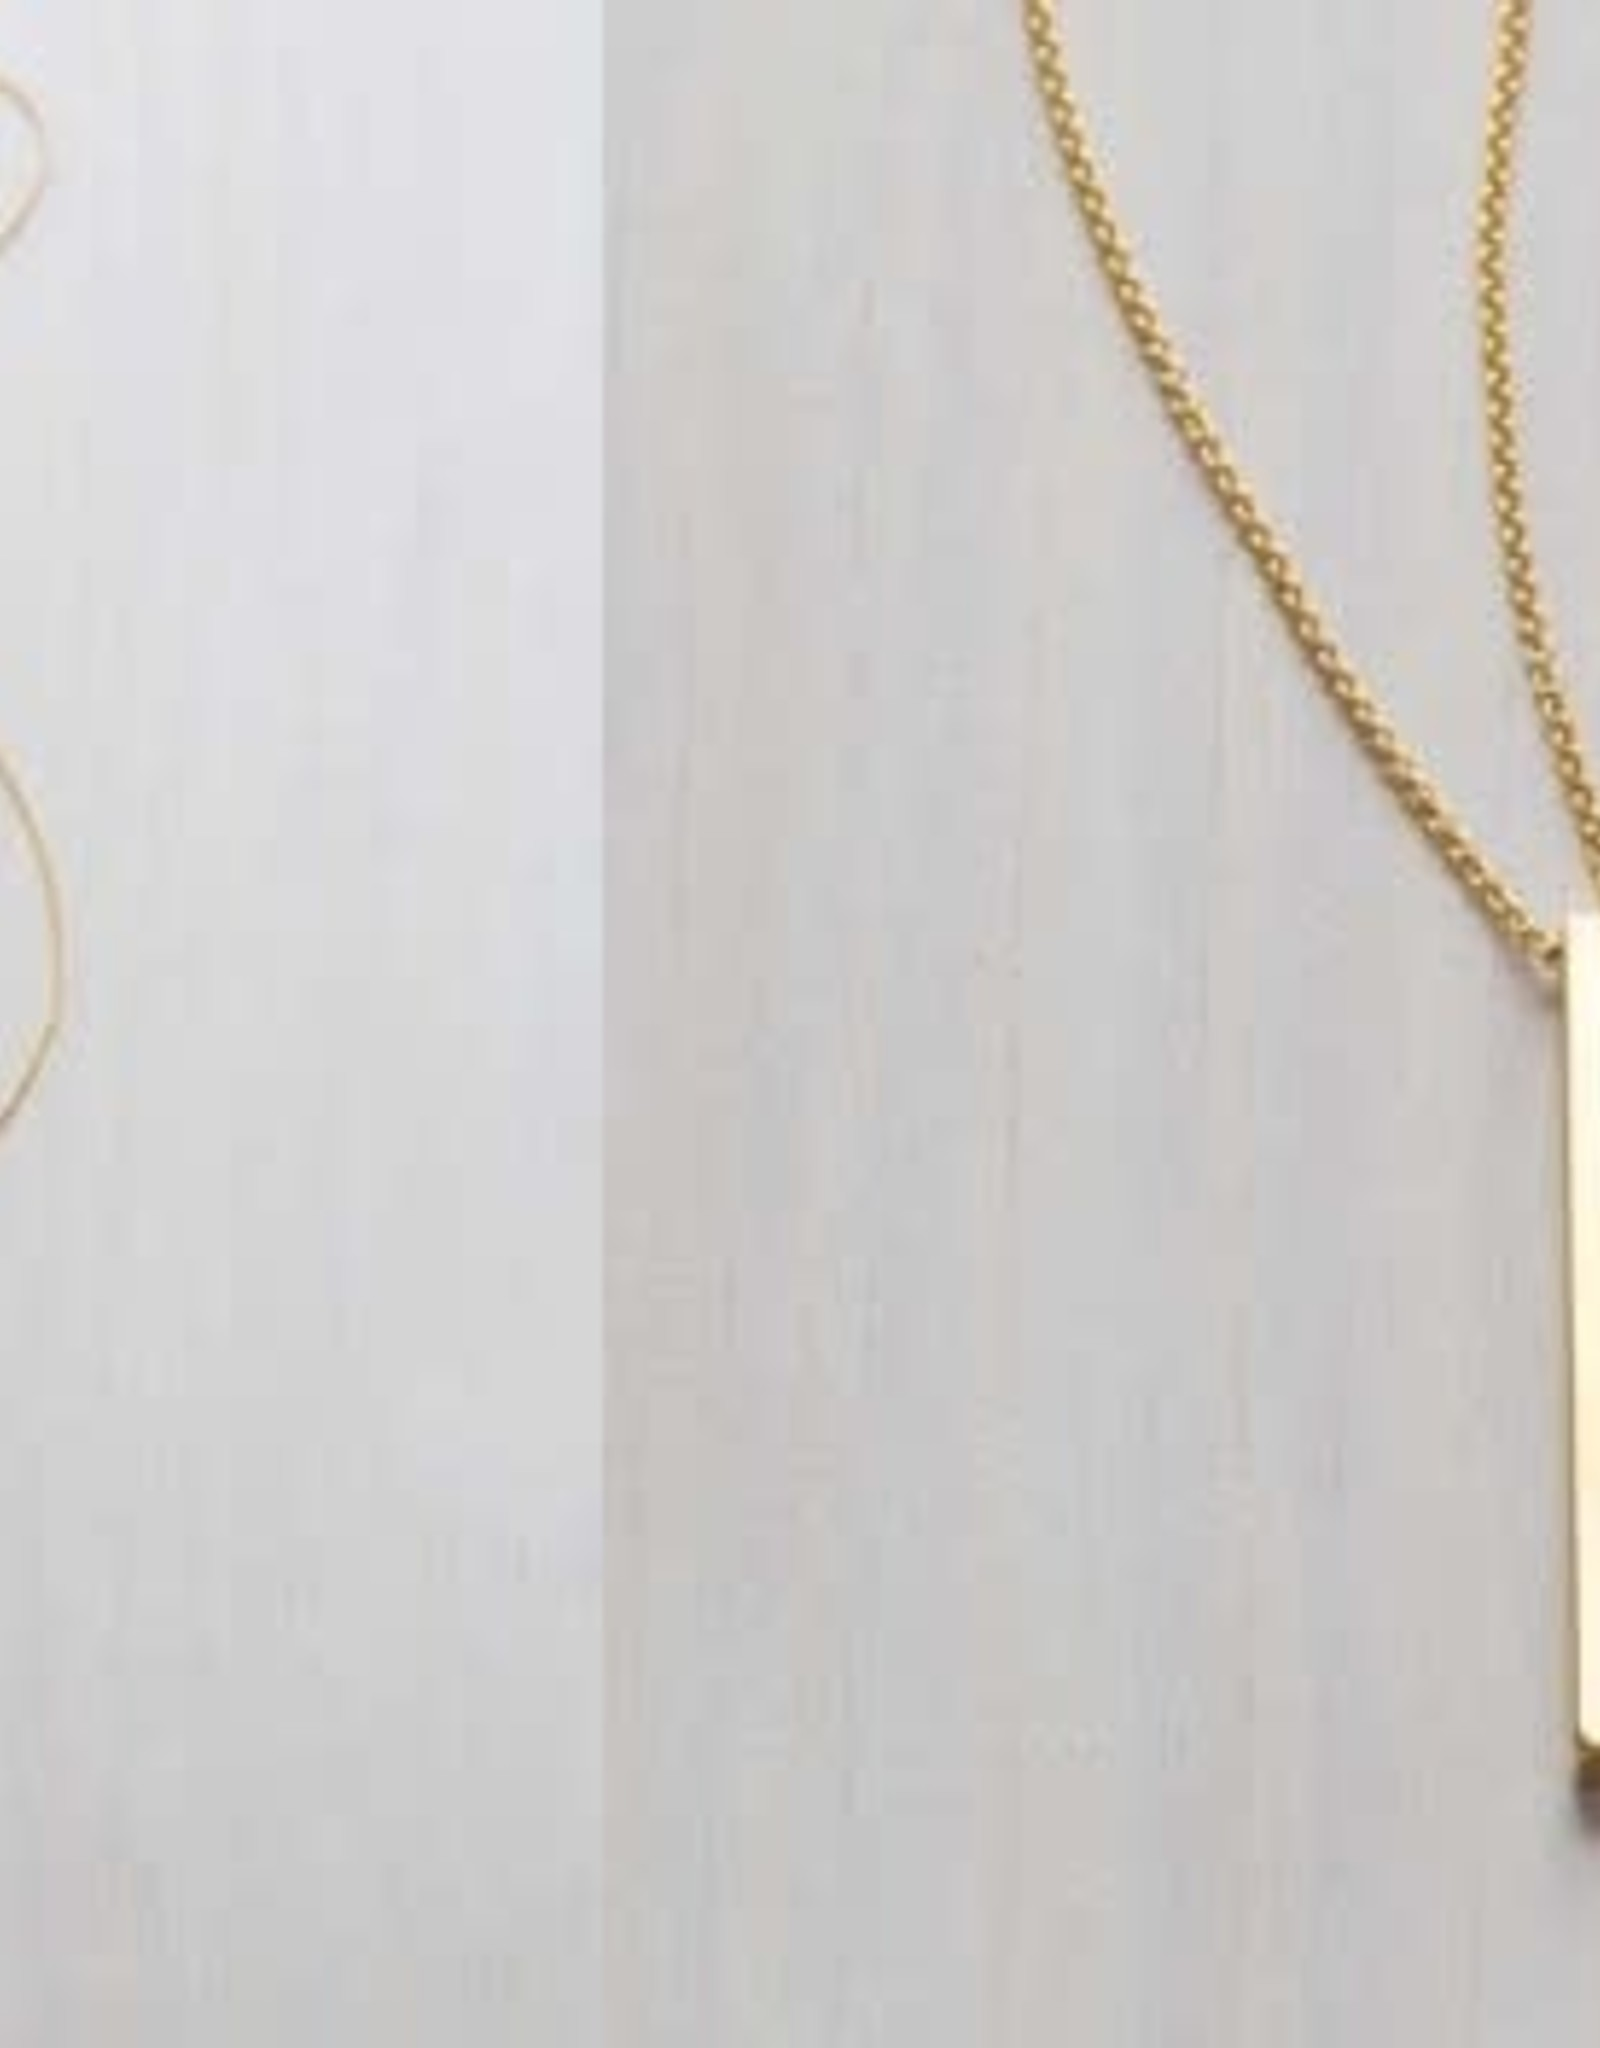 "AMANO studio BAR Necklaces, 30"" length, 24K gold plated"